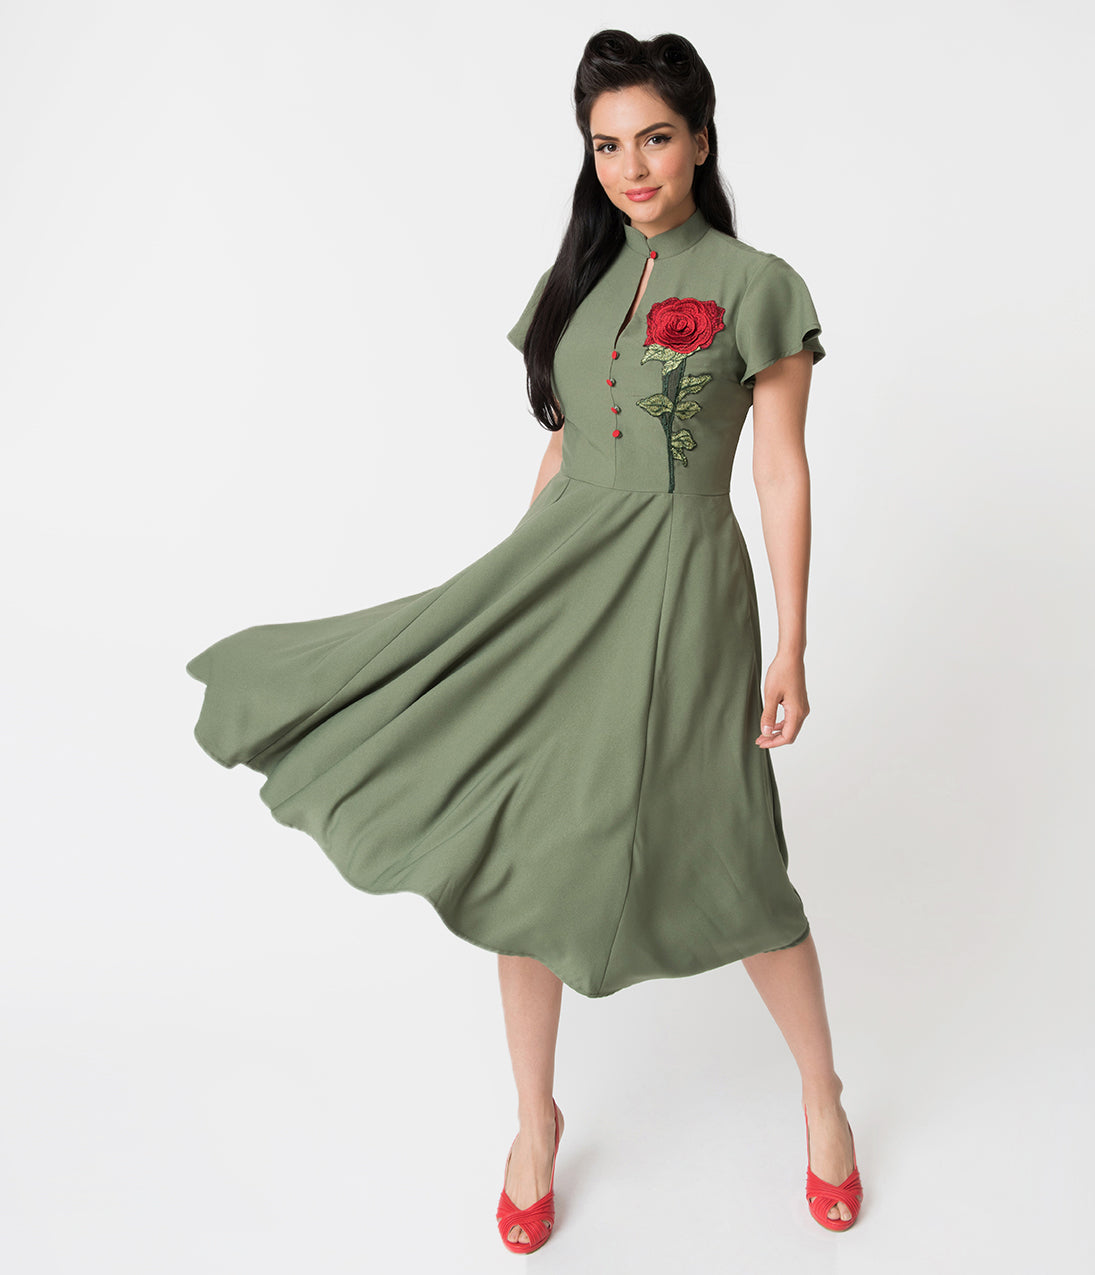 1950s Swing Dresses | 50s Swing Dress Unique Vintage 1950S Olive Green  Embroidered Red Rose Baltimore Swing Dress $74.00 AT vintagedancer.com